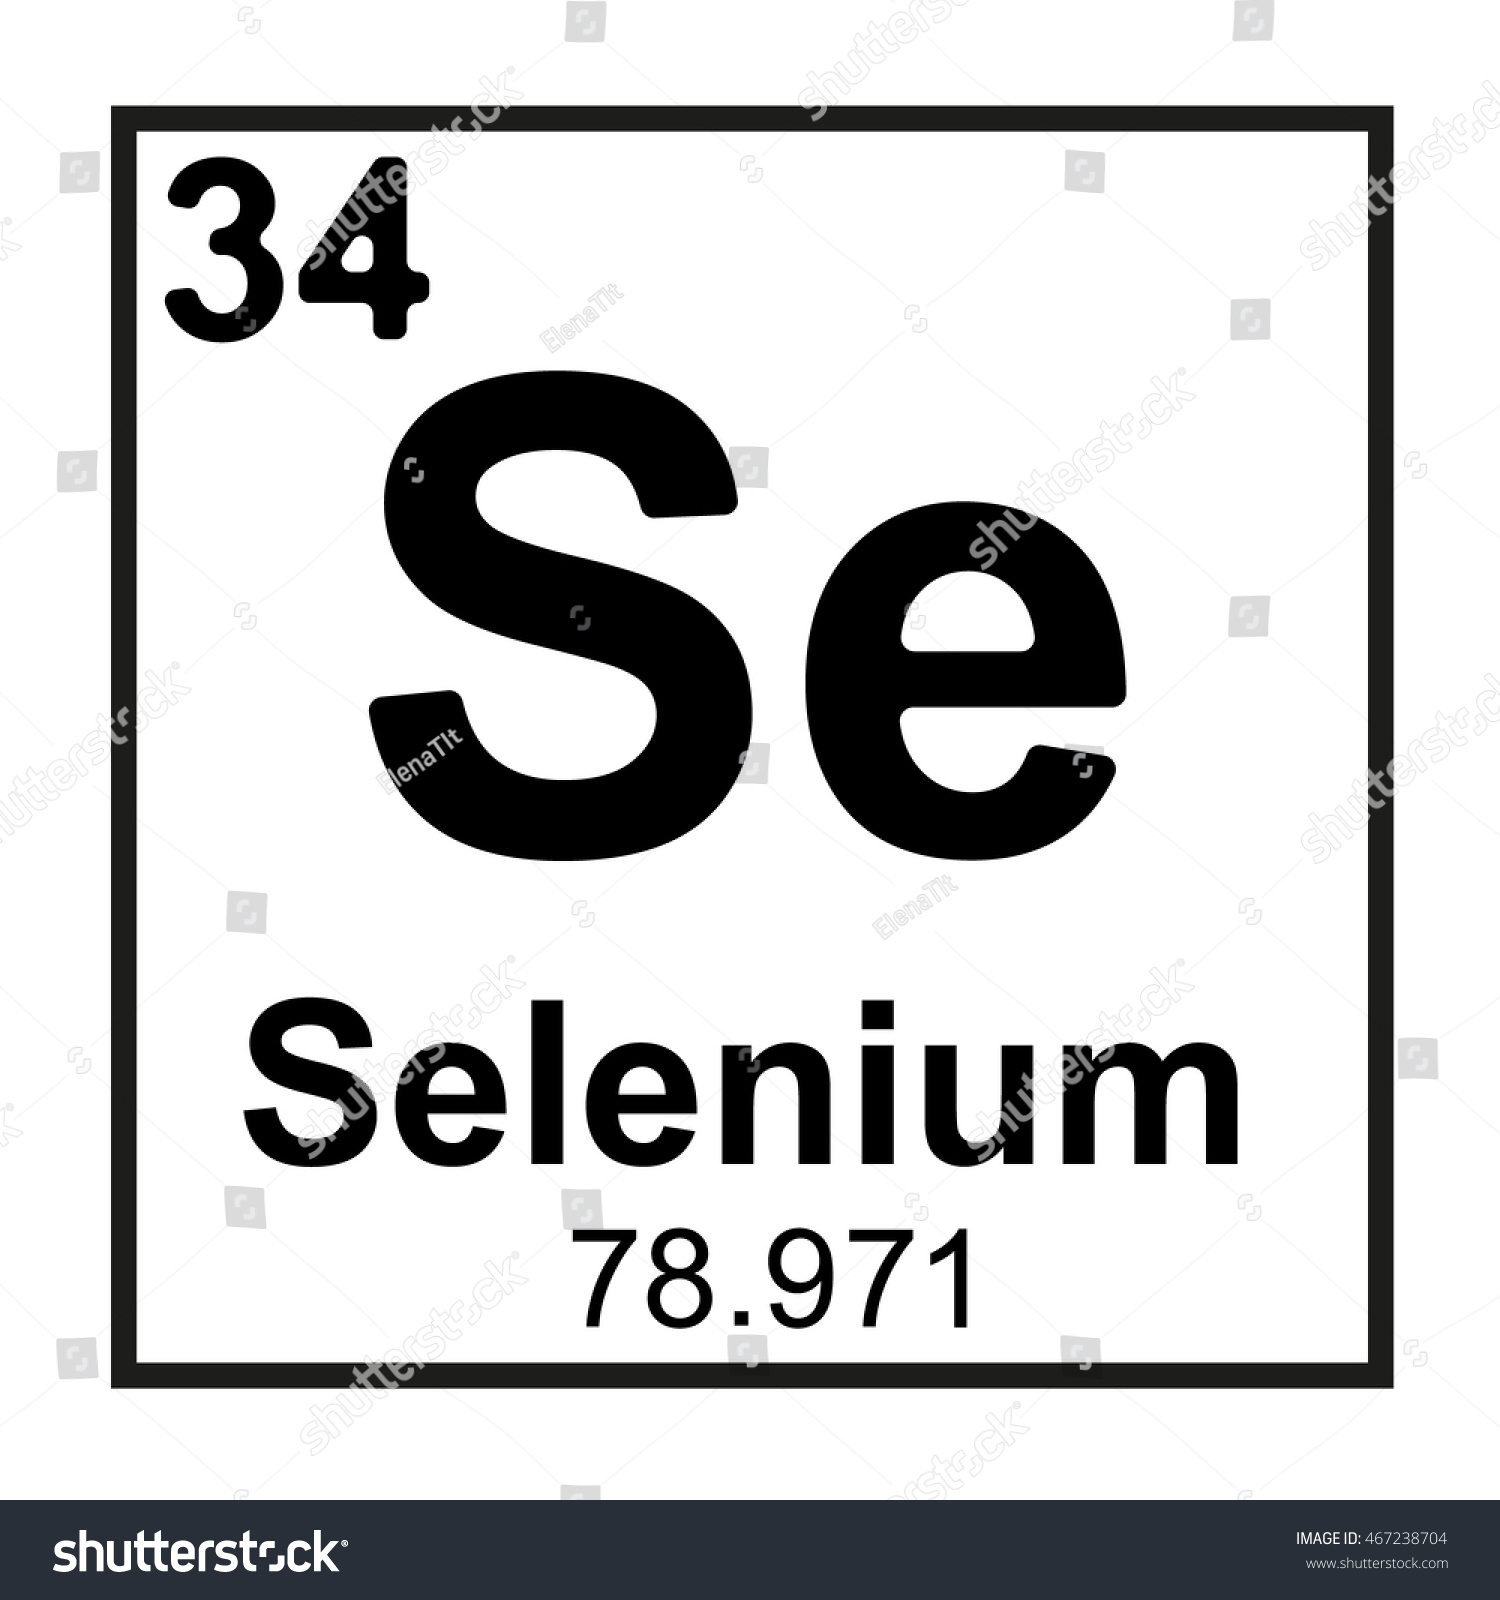 Periodic table element selenium stock vector 467238704 shutterstock periodic table element selenium gamestrikefo Image collections